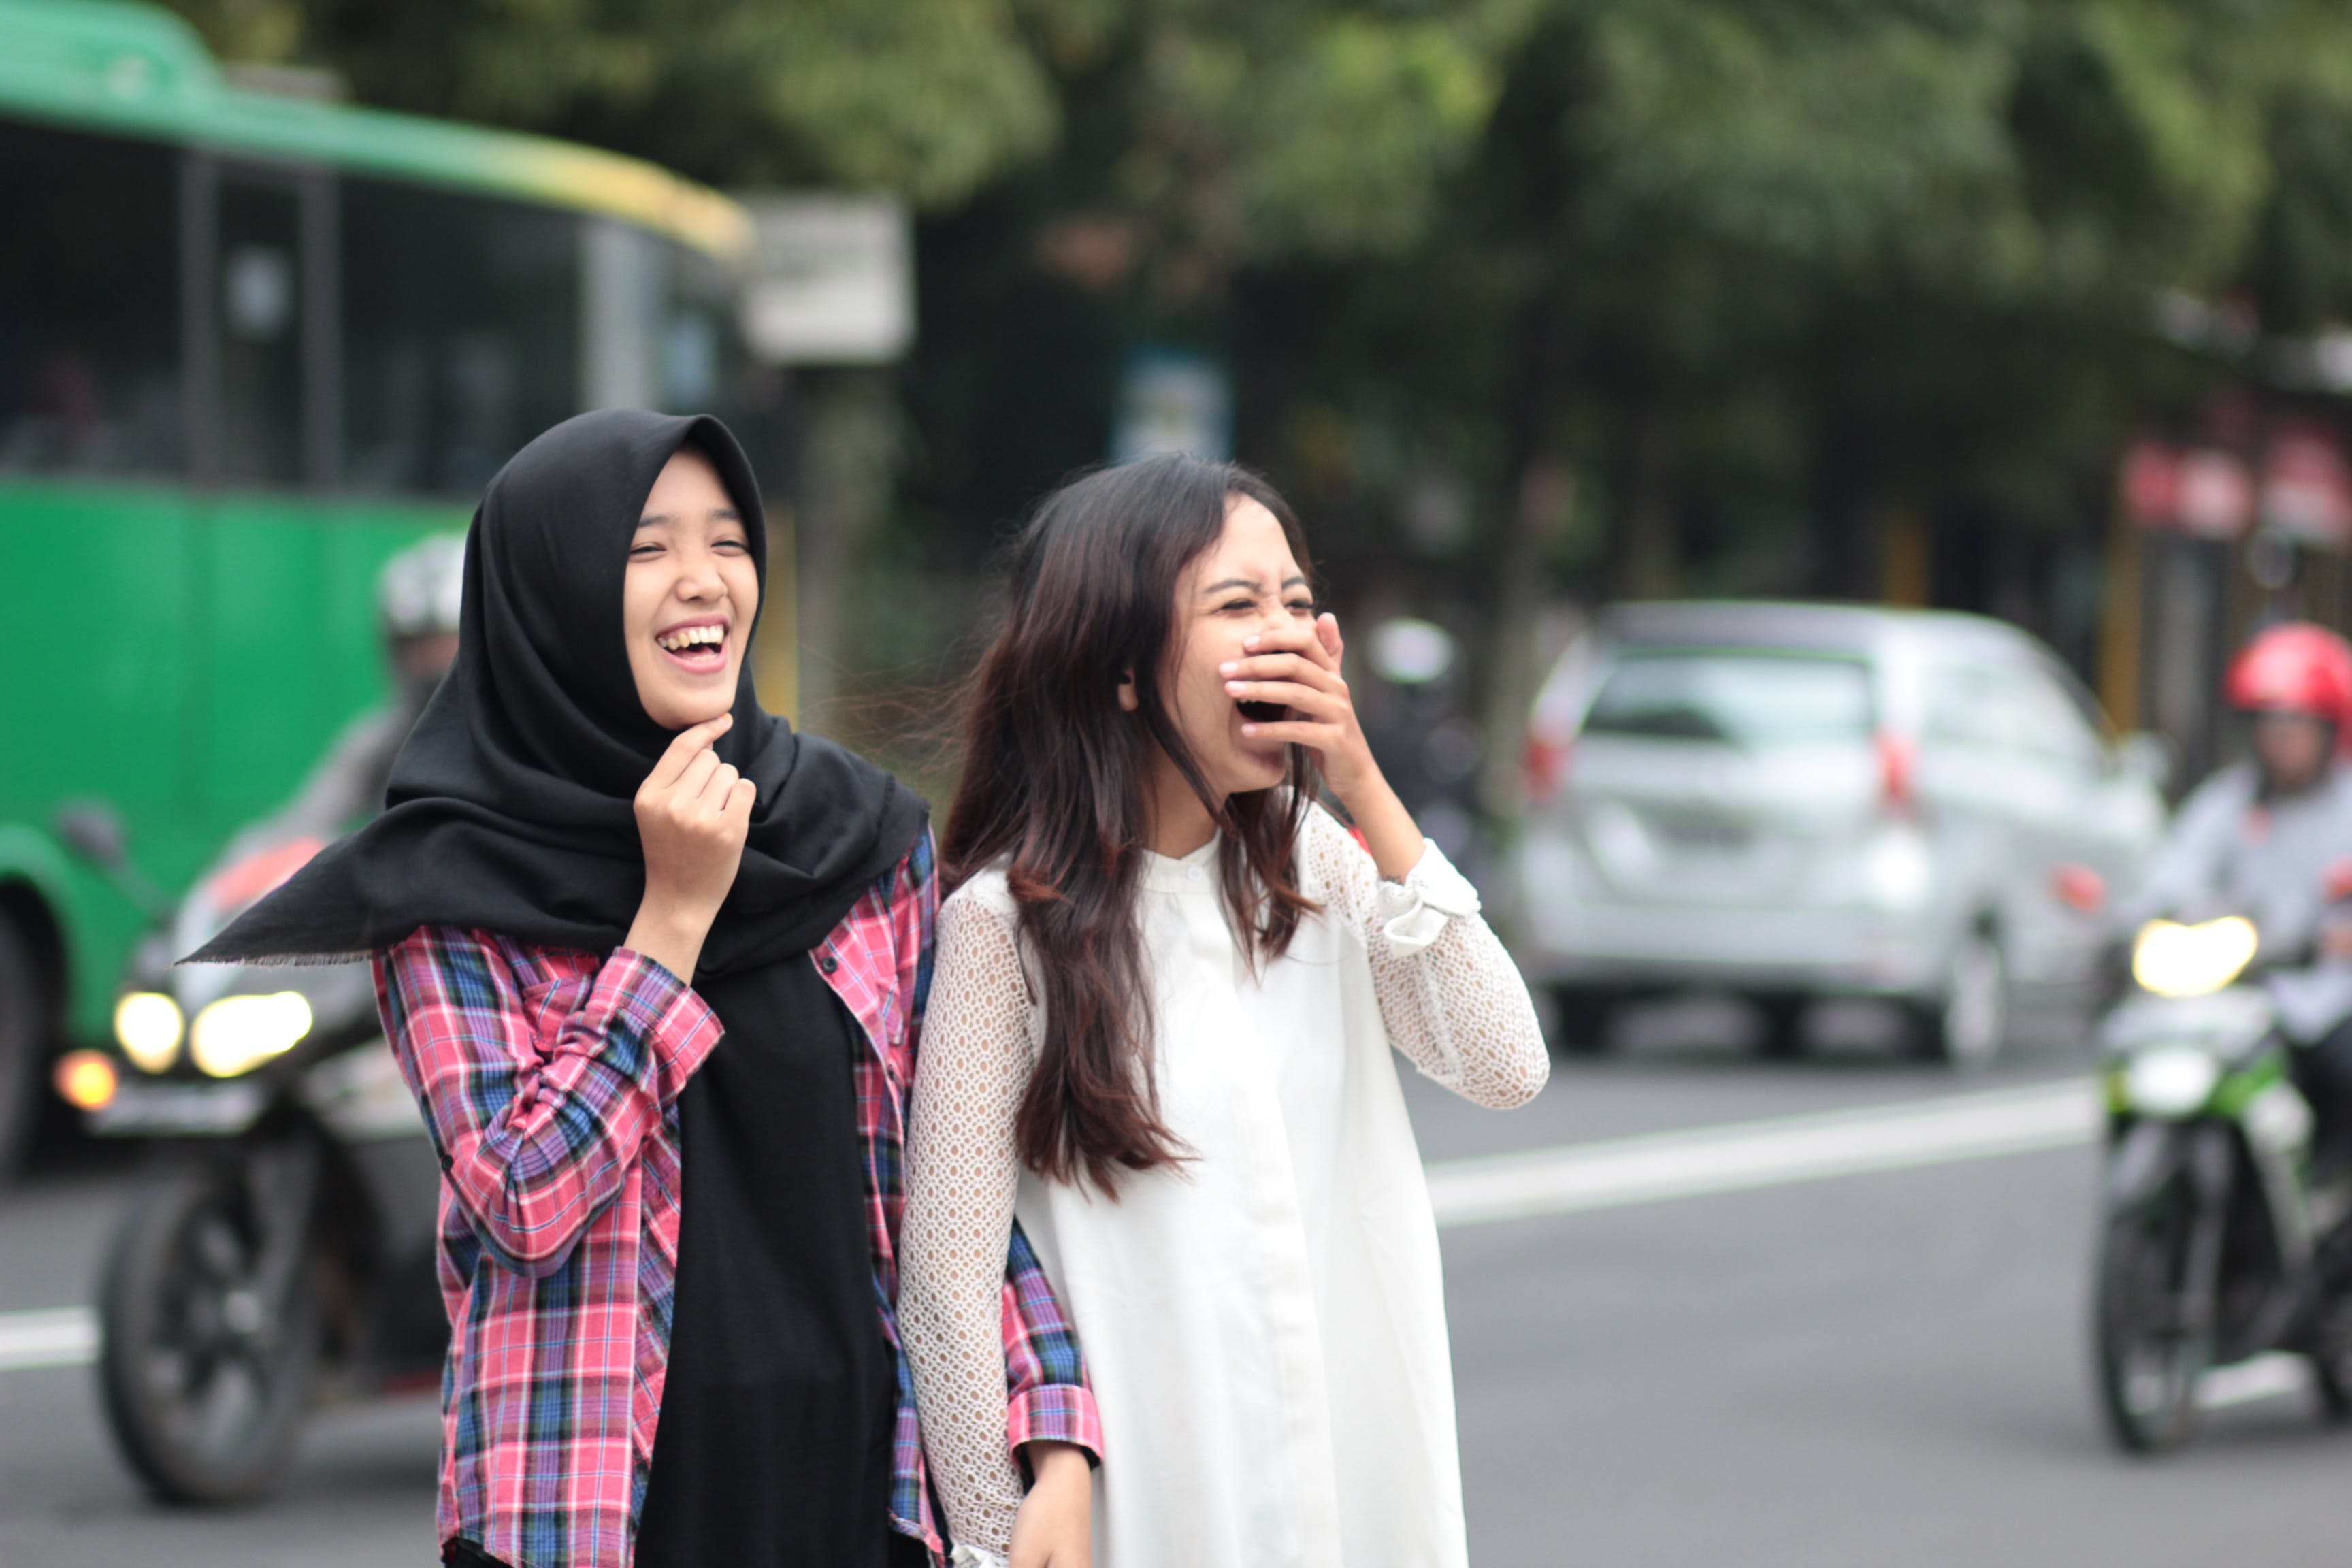 Two Women Laughing at Street